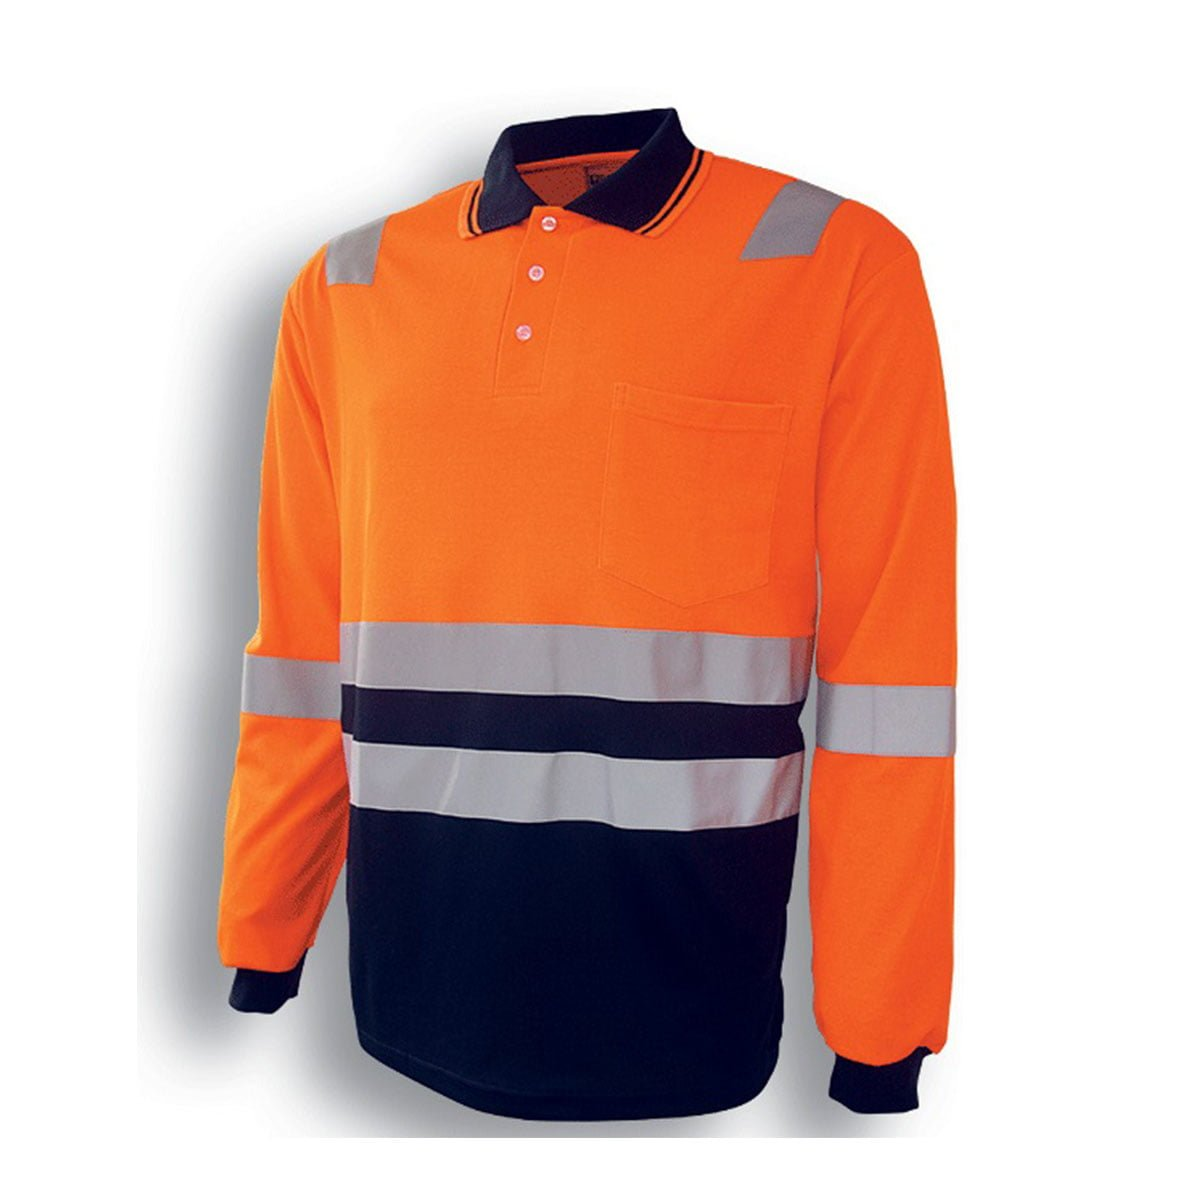 HI-VIS POLYFACE/COTTON BACK POLO WITH TAPE – L/S-Orange / Navy